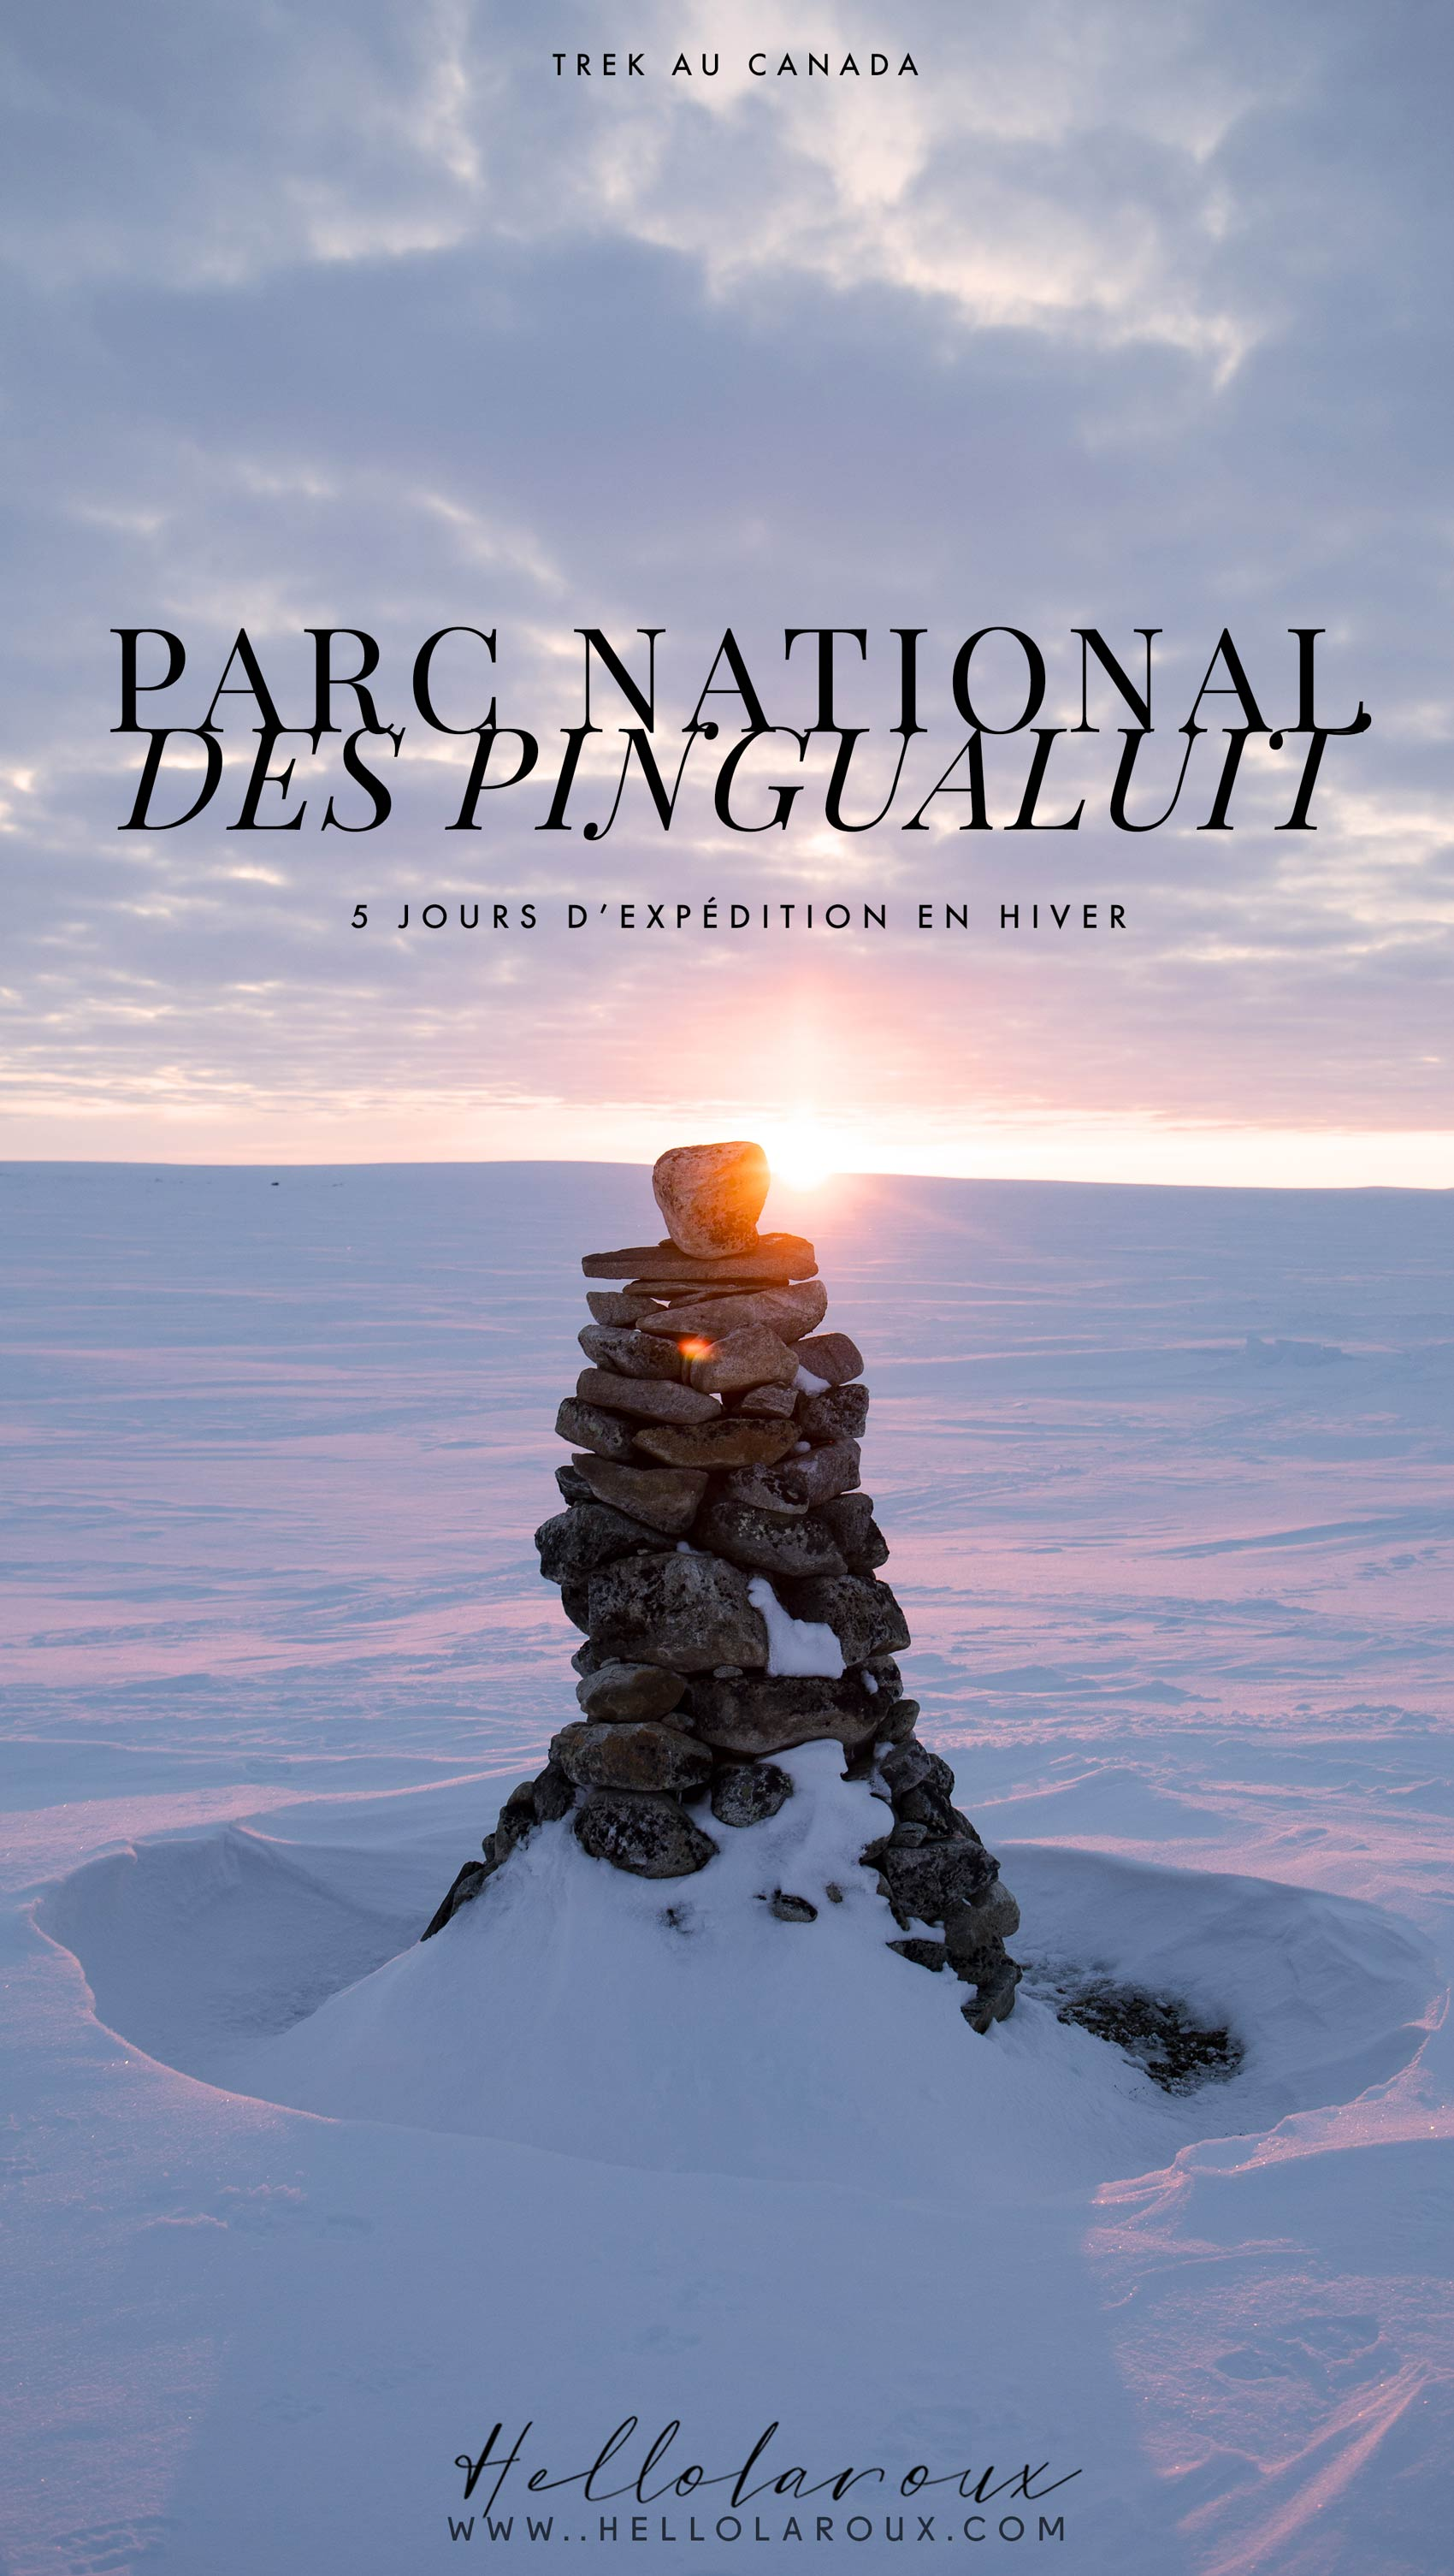 expédition au parc national des Pingualuit